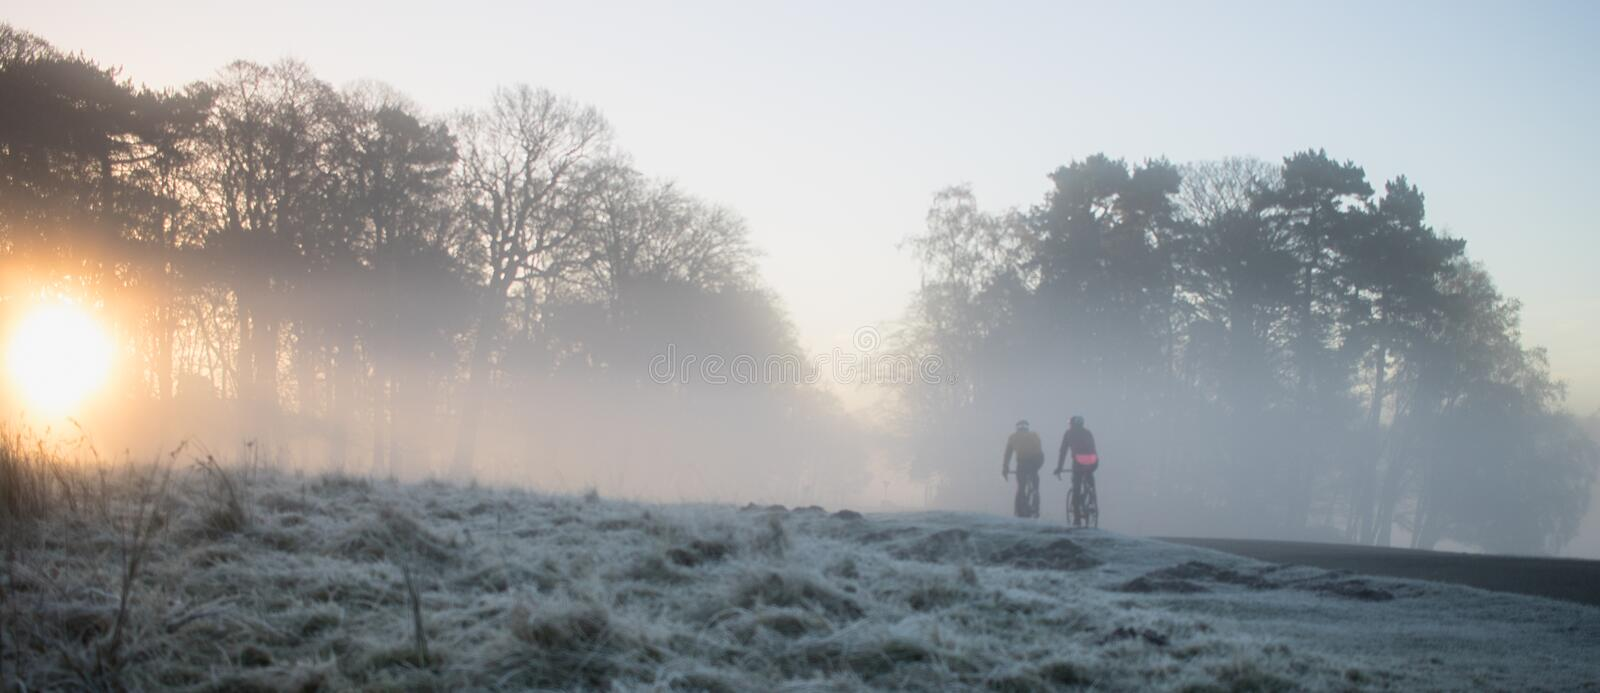 Misty morning ride. Two hardy cyclists brave a cold and frosty ride. The rising sun can be seen braking though a group of trees. A misty and atmospheric seen royalty free stock image